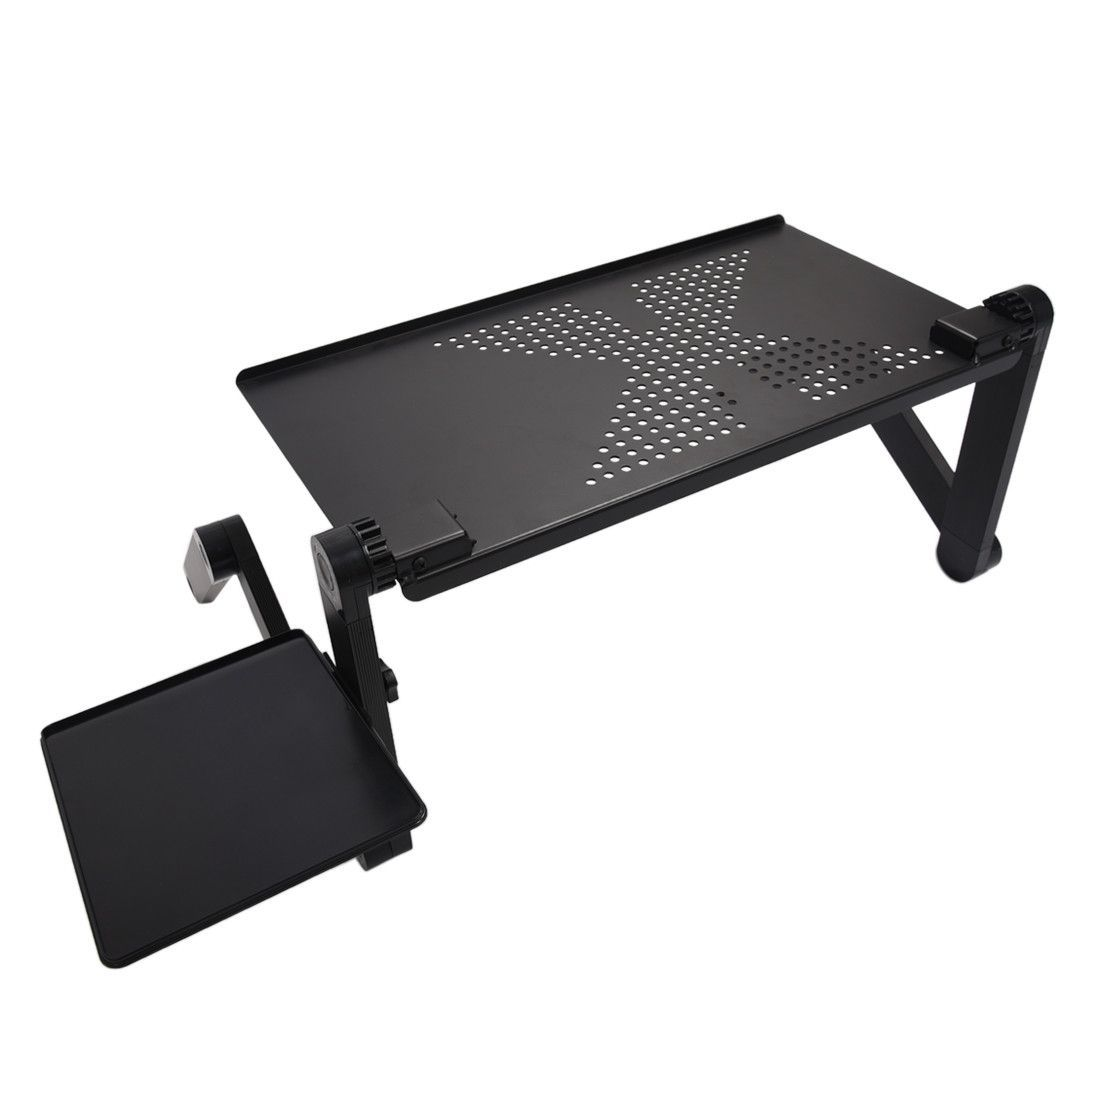 Adjustable multi functional ergonomic mobile laptop table stand adjustable multi functional ergonomic mobile laptop table stand for bed portable sofa folding table foldable notebook geotapseo Gallery